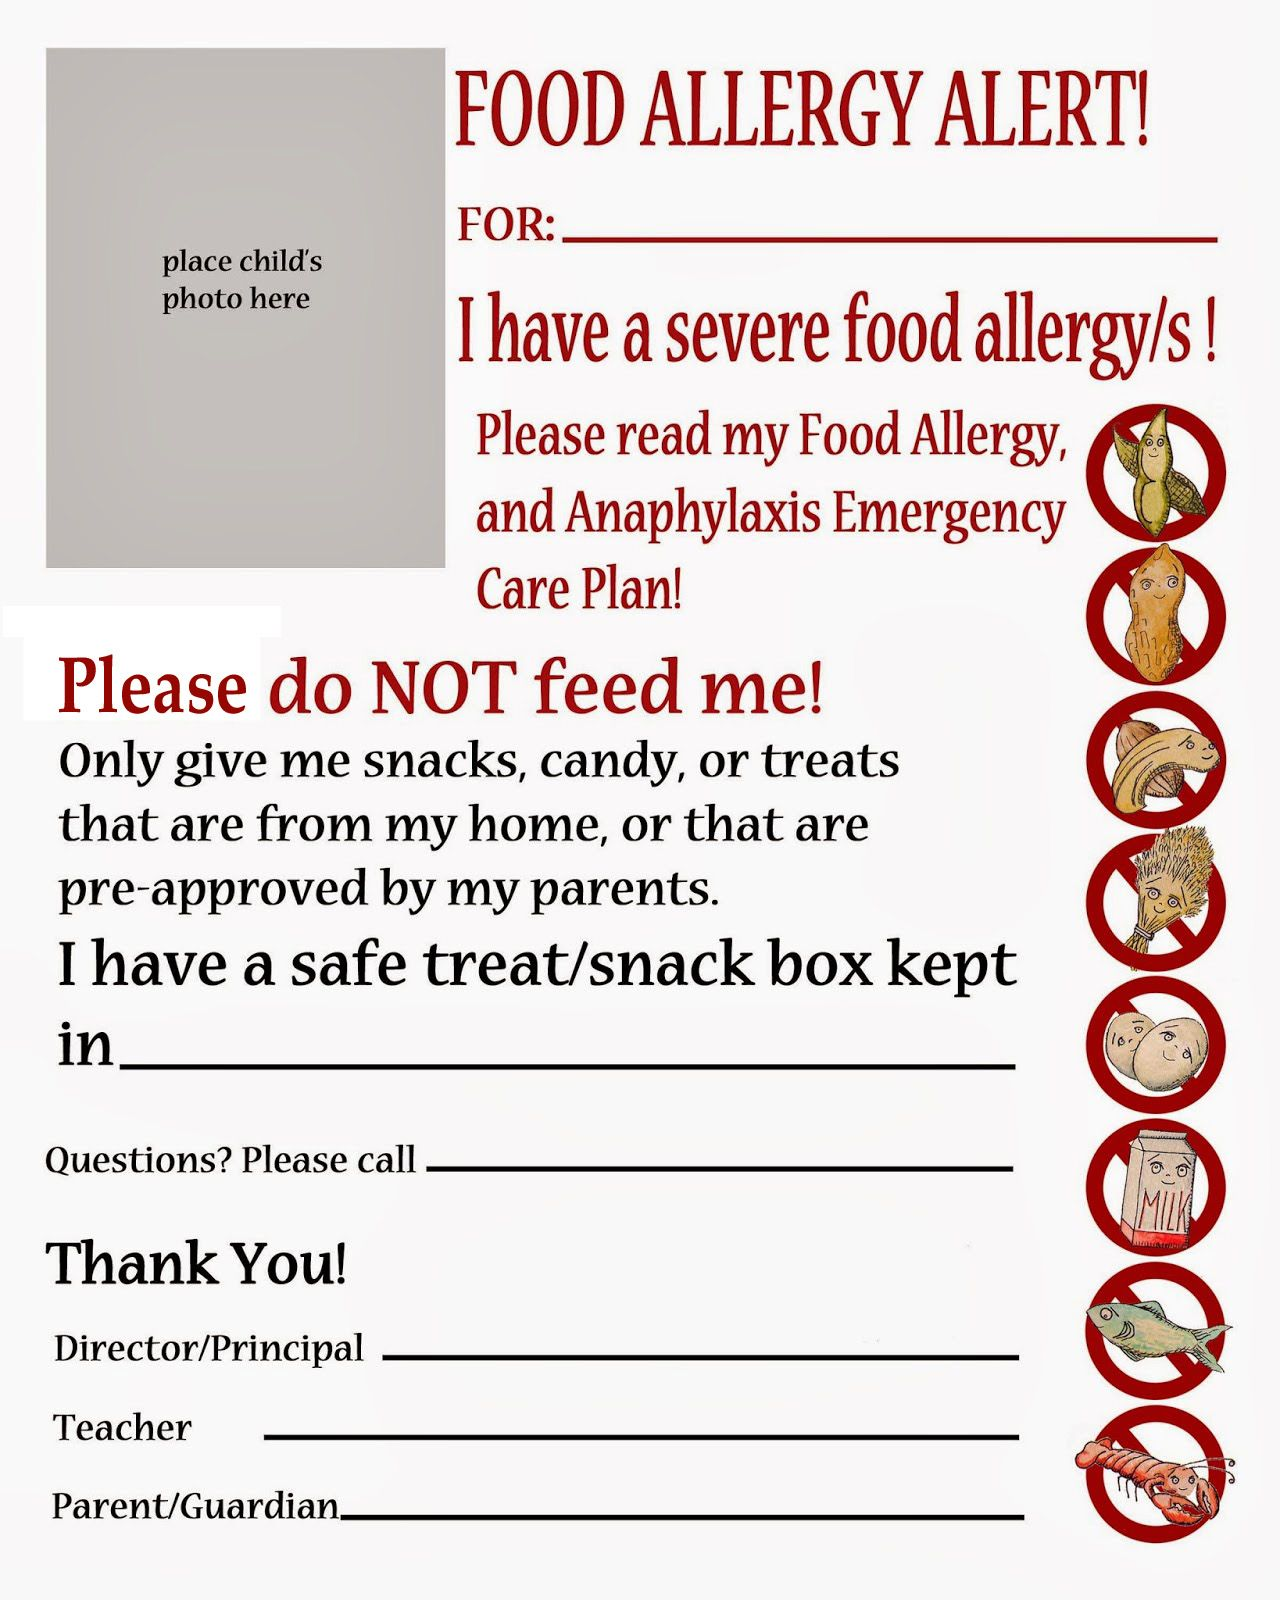 Thriving With Allergies Food Allergy Alert Daycare And School